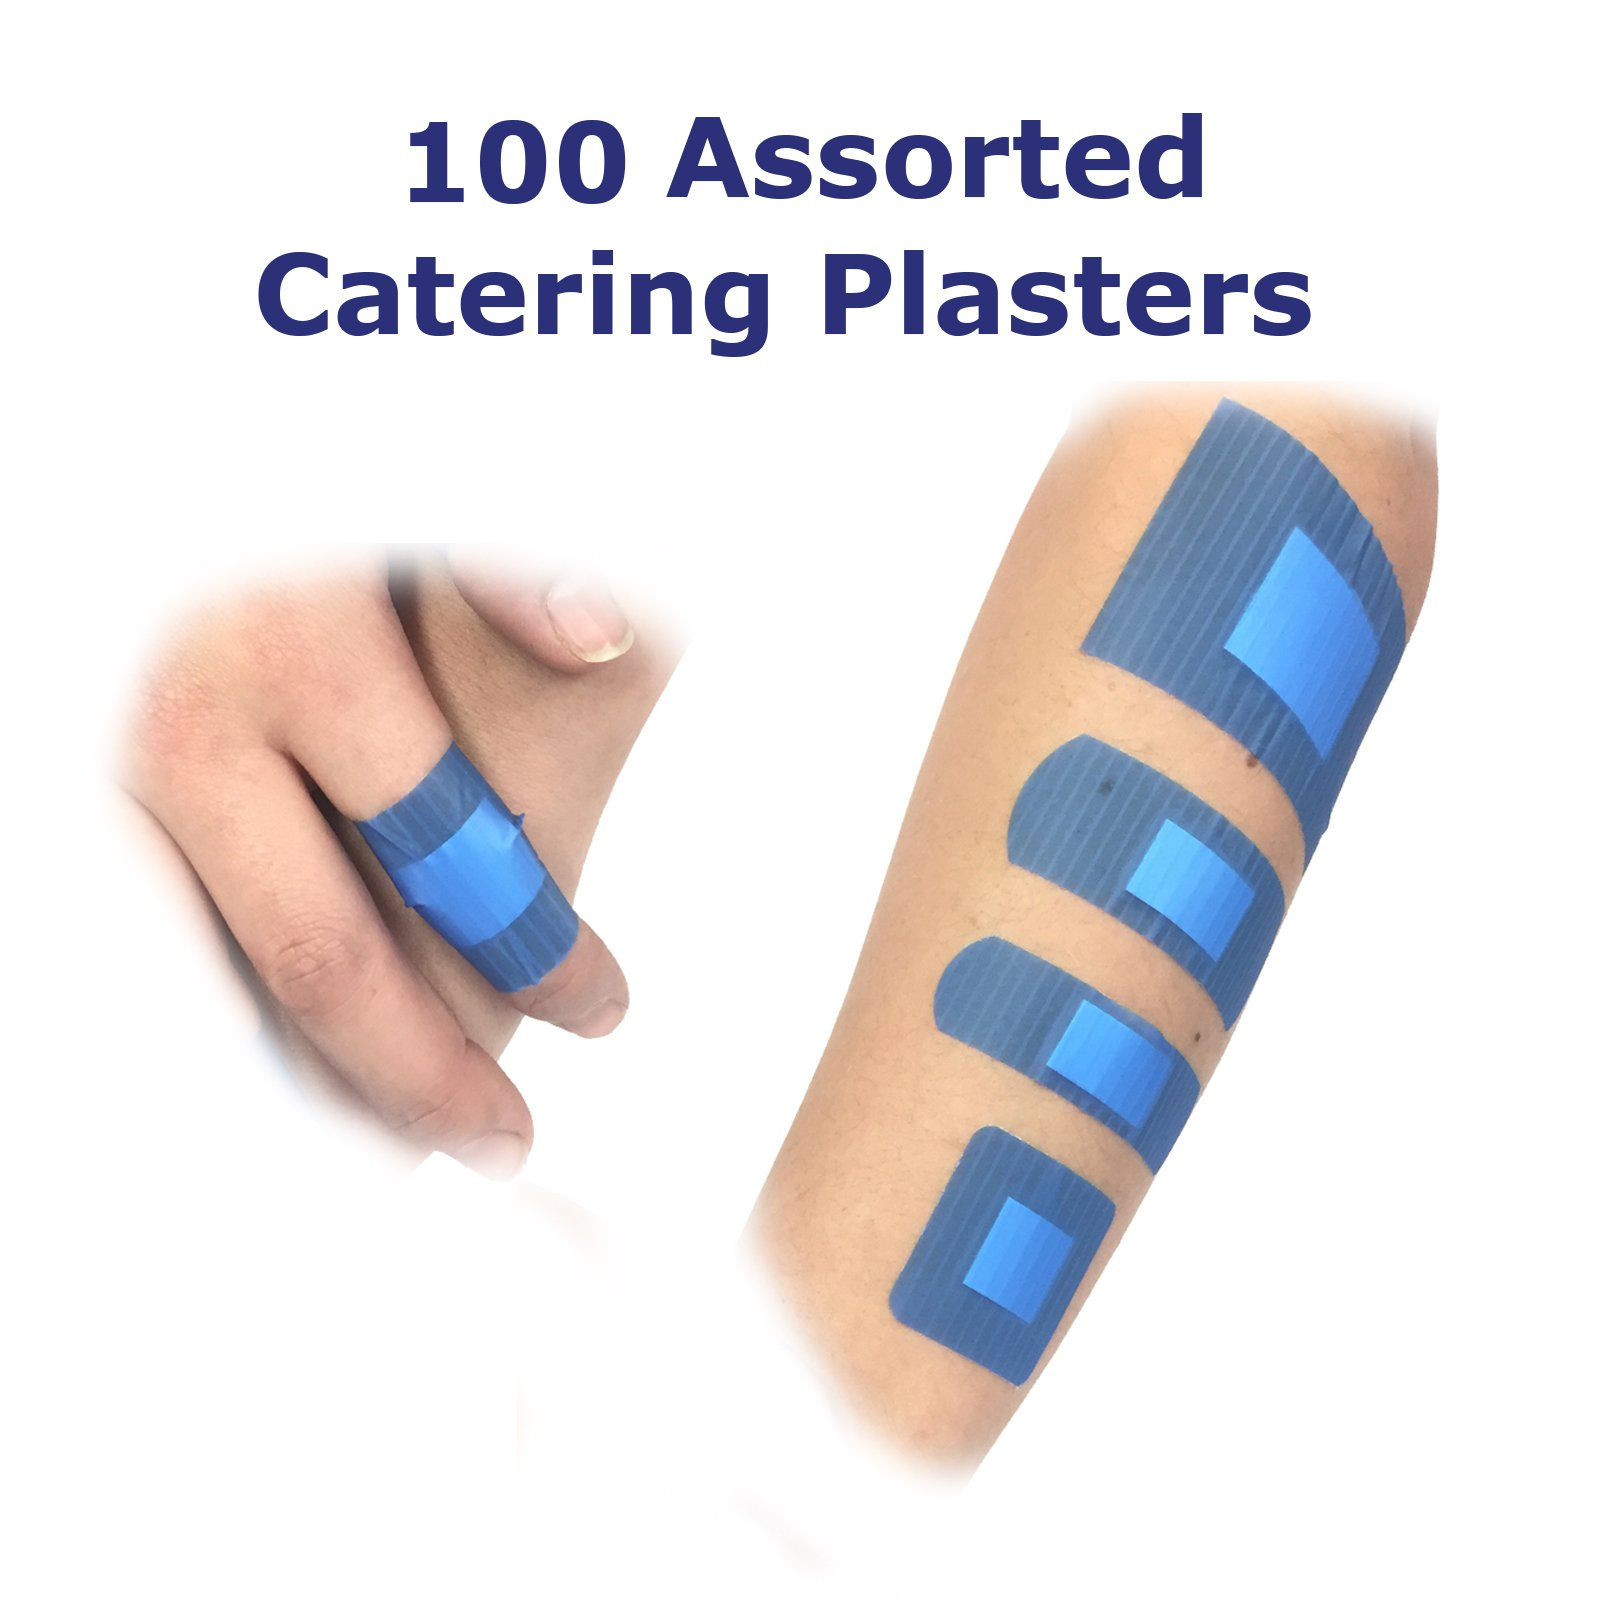 5 PACK OF 100 ASSORTED QUALICARE PREMIUM ULTRA THIN BLUE CATERING FIRST AID W...